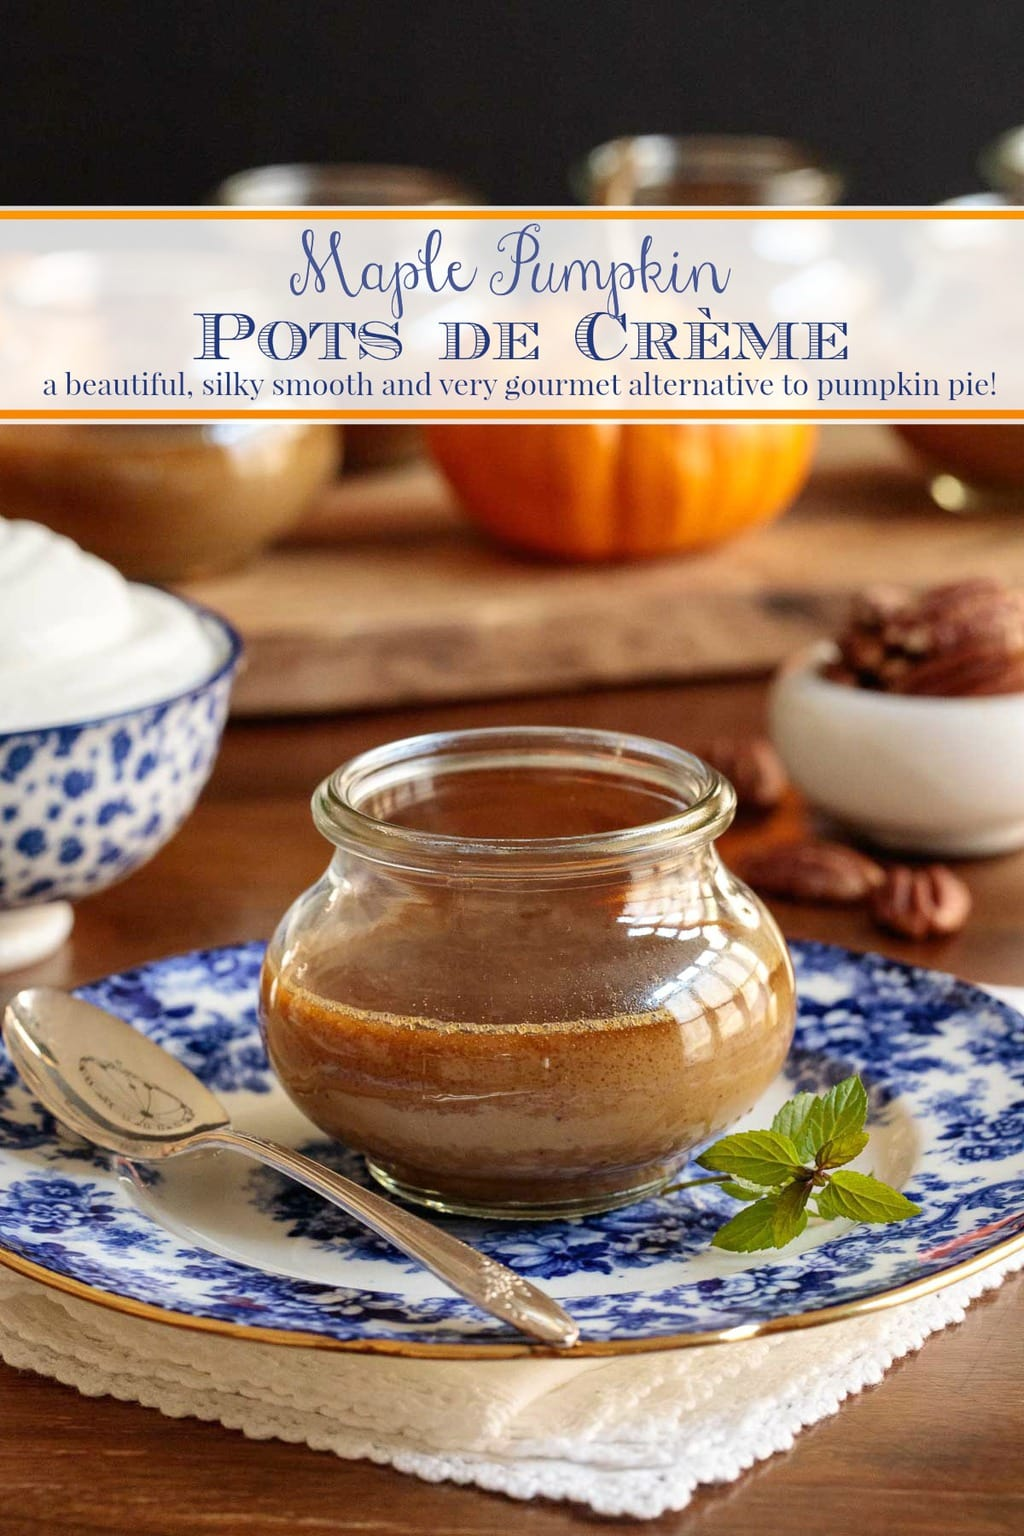 These make-ahead Maple Pumpkin Pots de Crème have an amazingly silky smooth texture. Each delicious bite is bursting with warm-spiced flavor - a beautiful, gourmet alternative to pie! #pumpkindessert, #easypumpkindessert, #pumpkinpotsdecreme